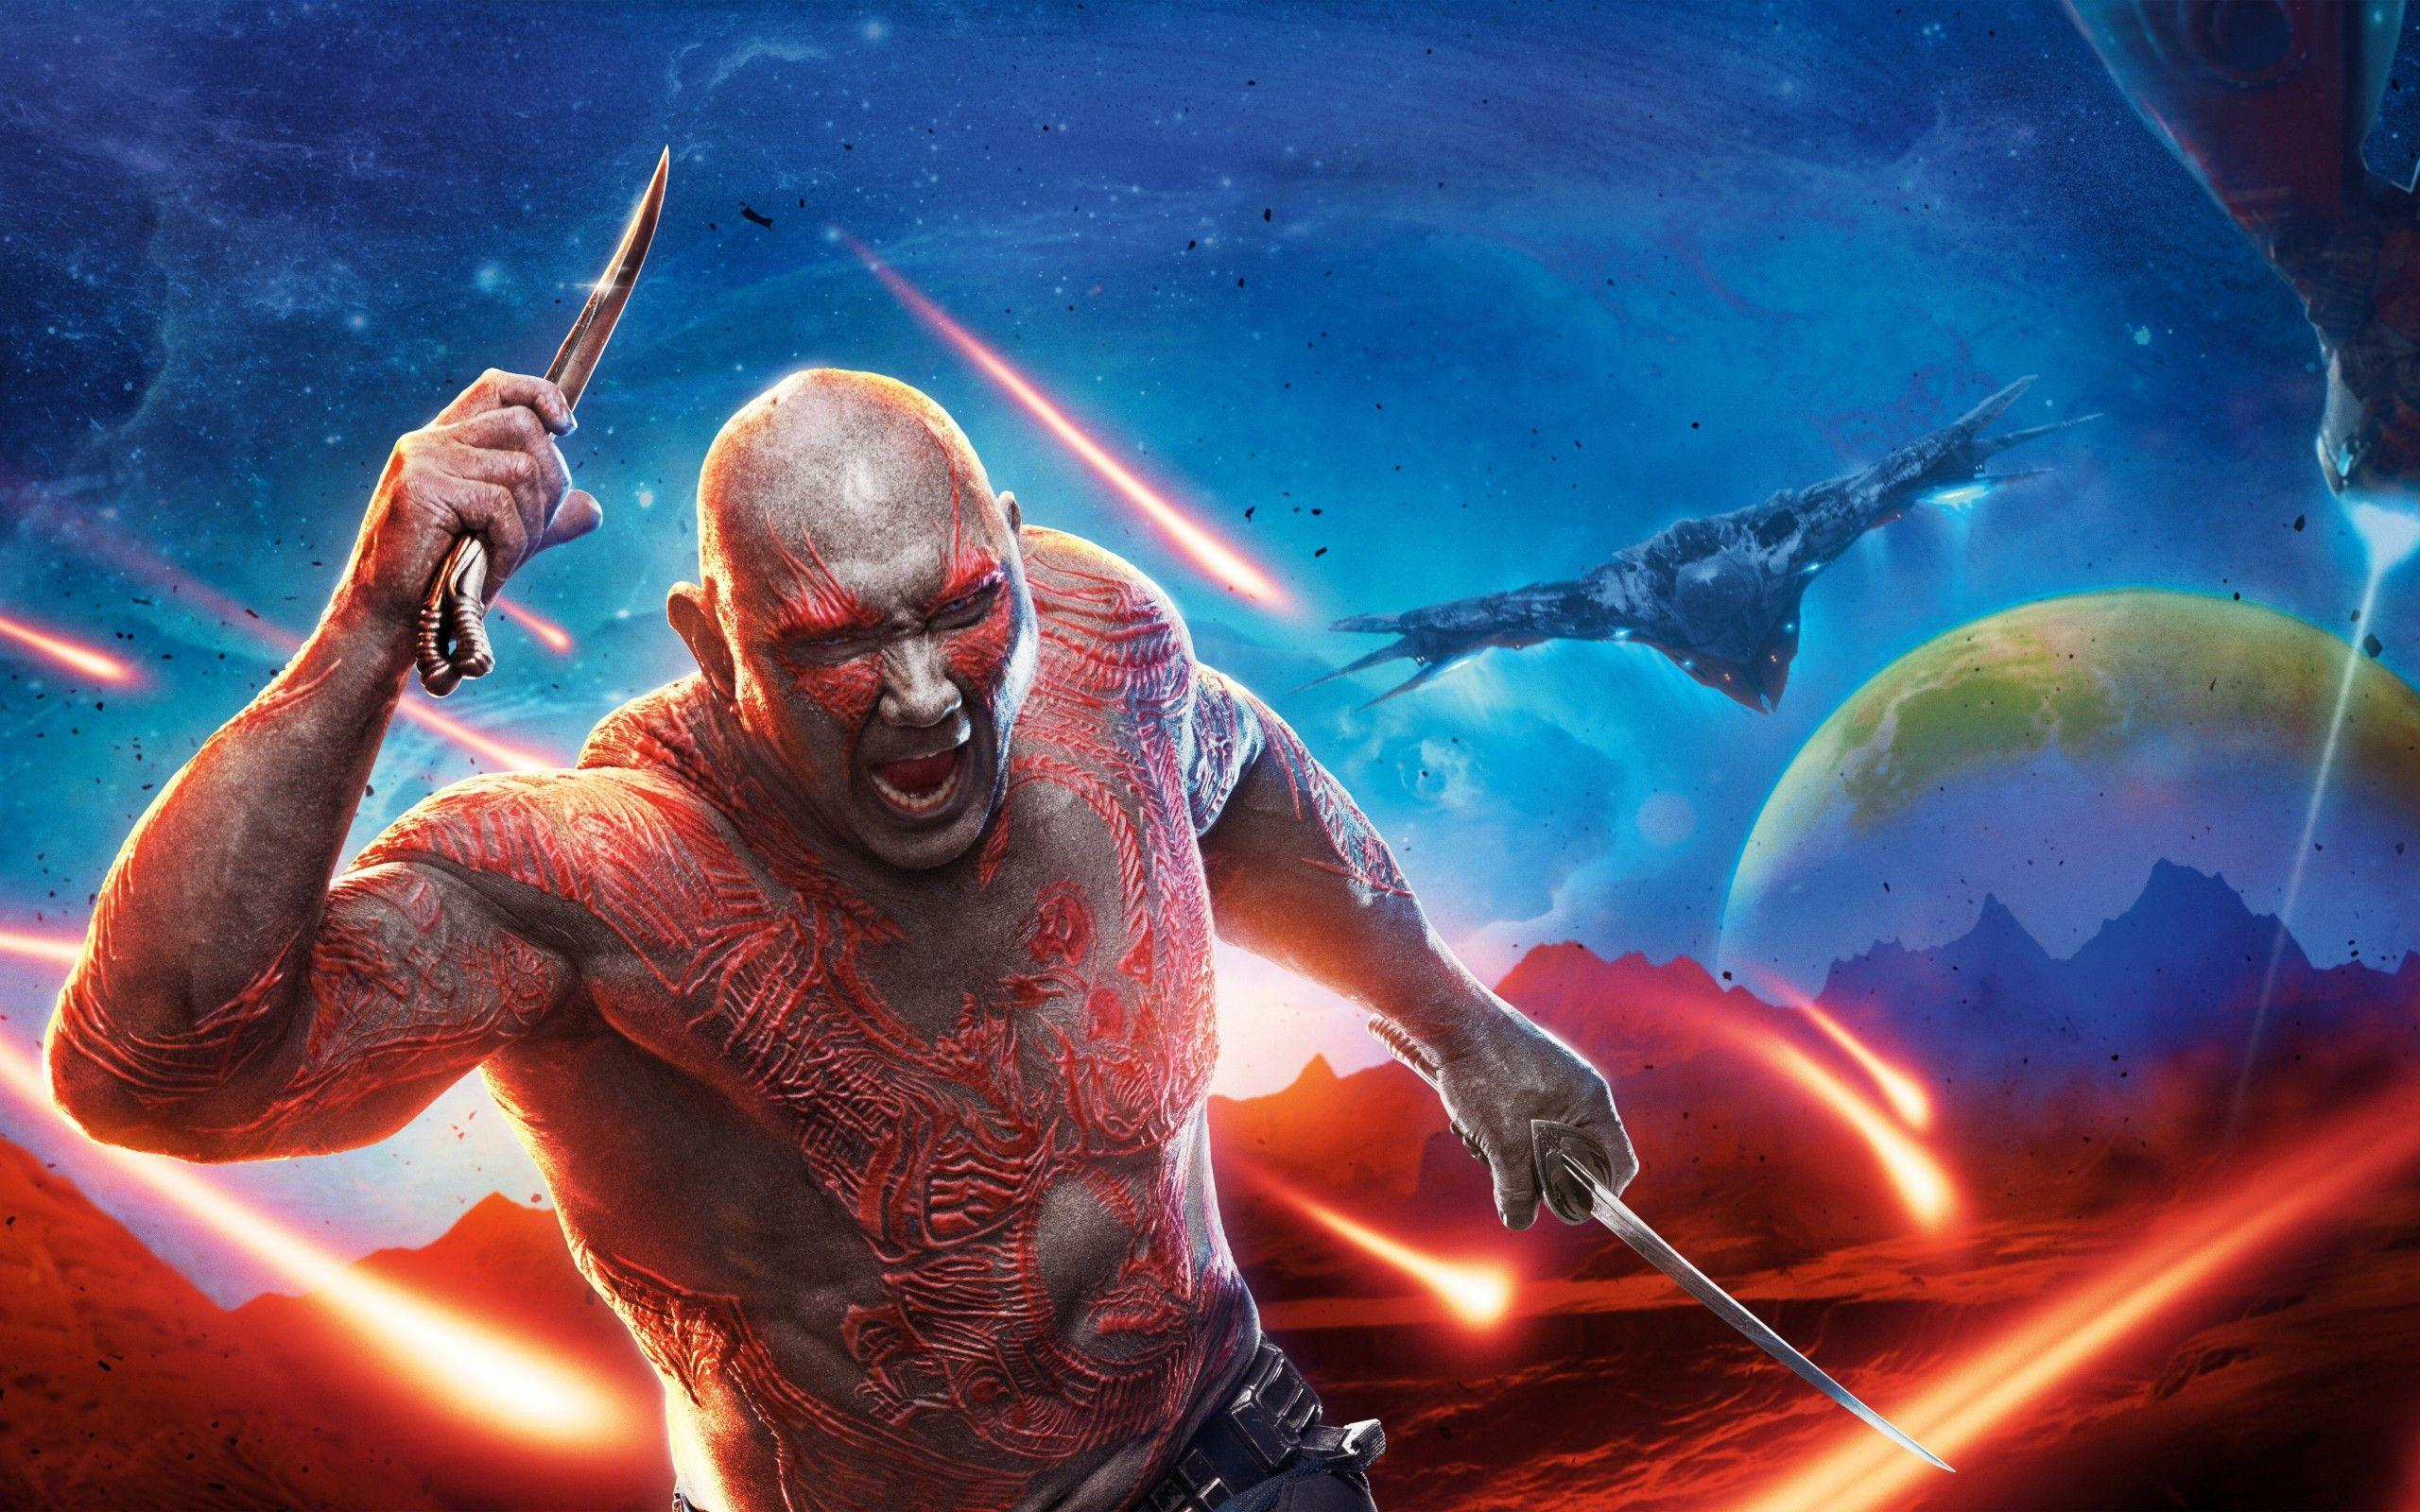 Wallpapers Drax the Destroyer, Dave Bautista, Guardians of the